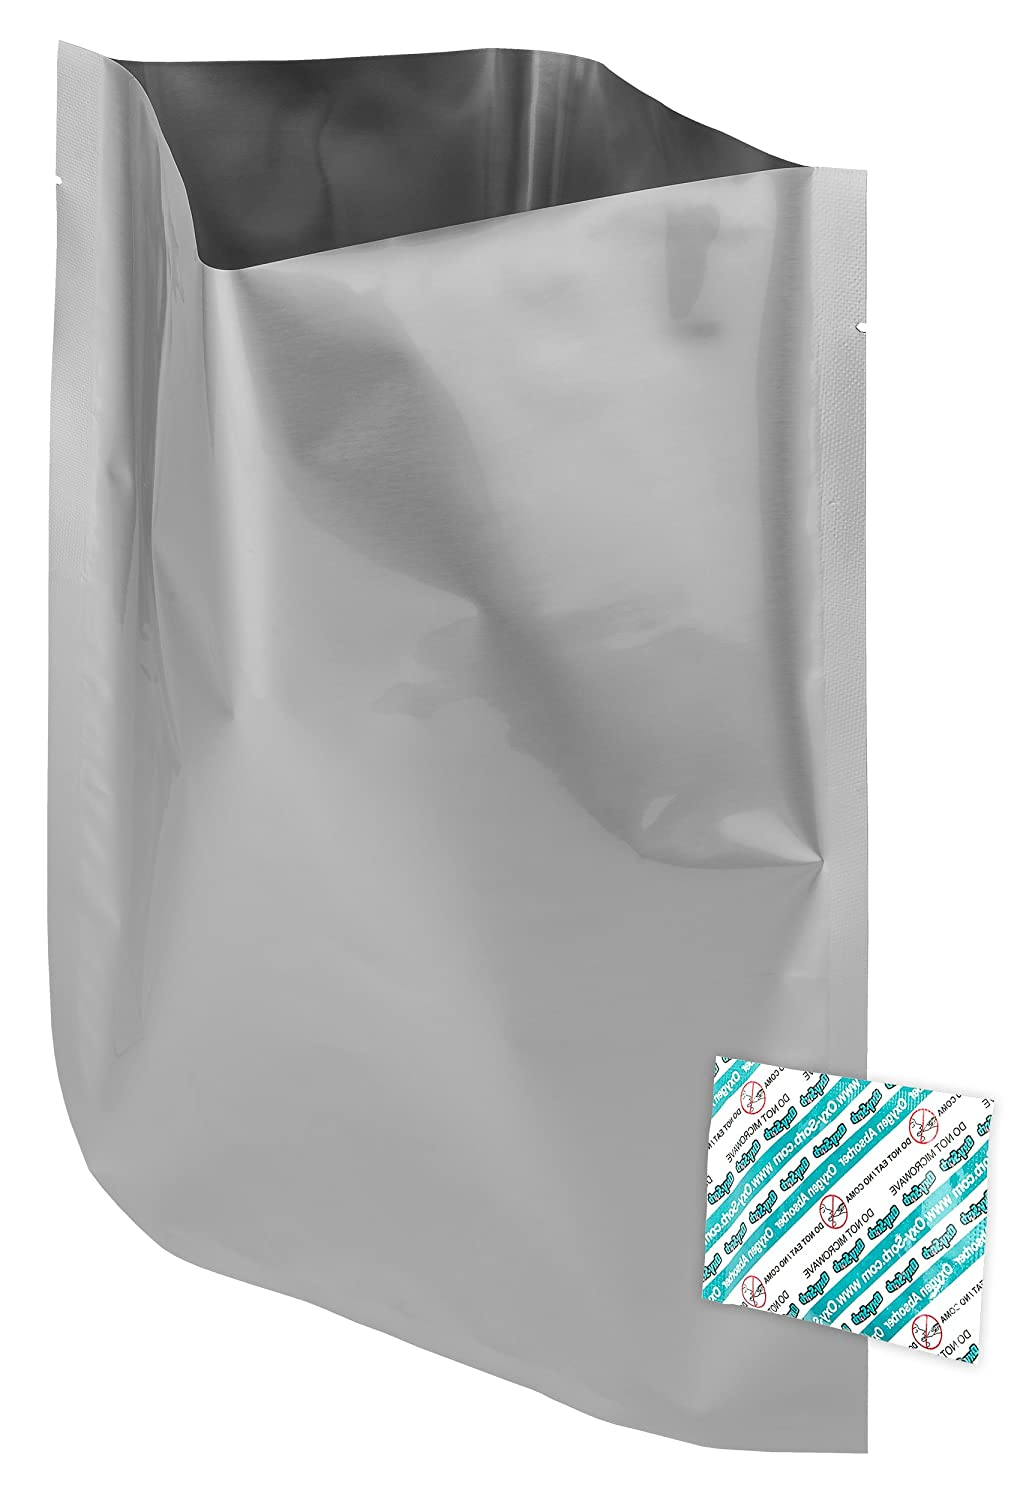 "50-1 Gallon (10""x14"") Dry-Packs Mylar Bags & 50-300cc Oxygen Absorbers for Dried Dehydrated and Long Term Food Storage"